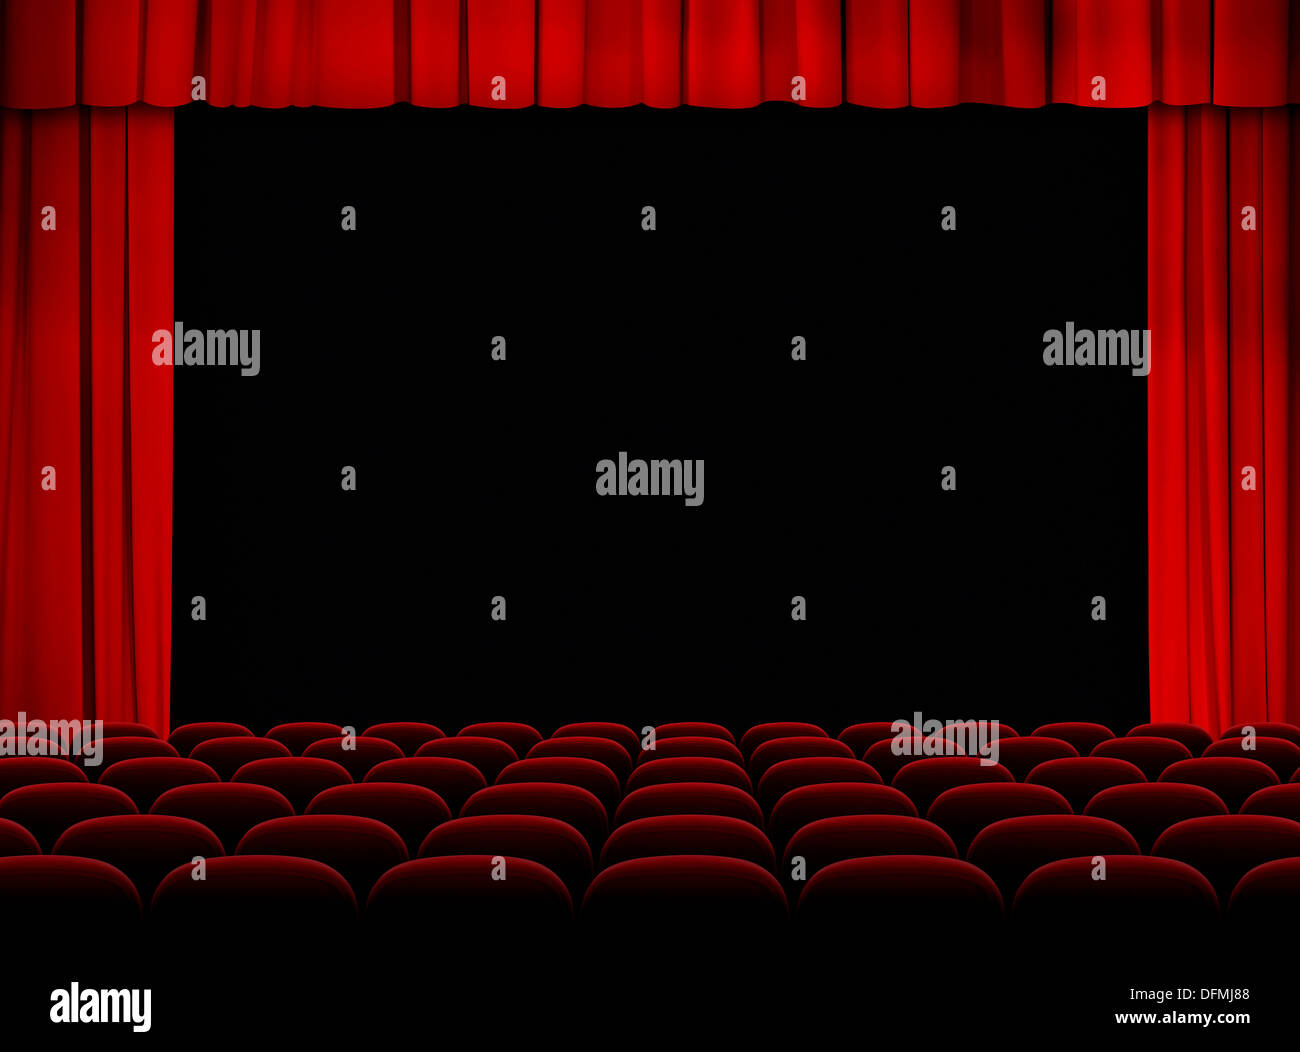 Stock photo dramatic red old fashioned elegant theater stage stock - Stock Photo Theater Red Auditorium With Stage Curtains And Seats